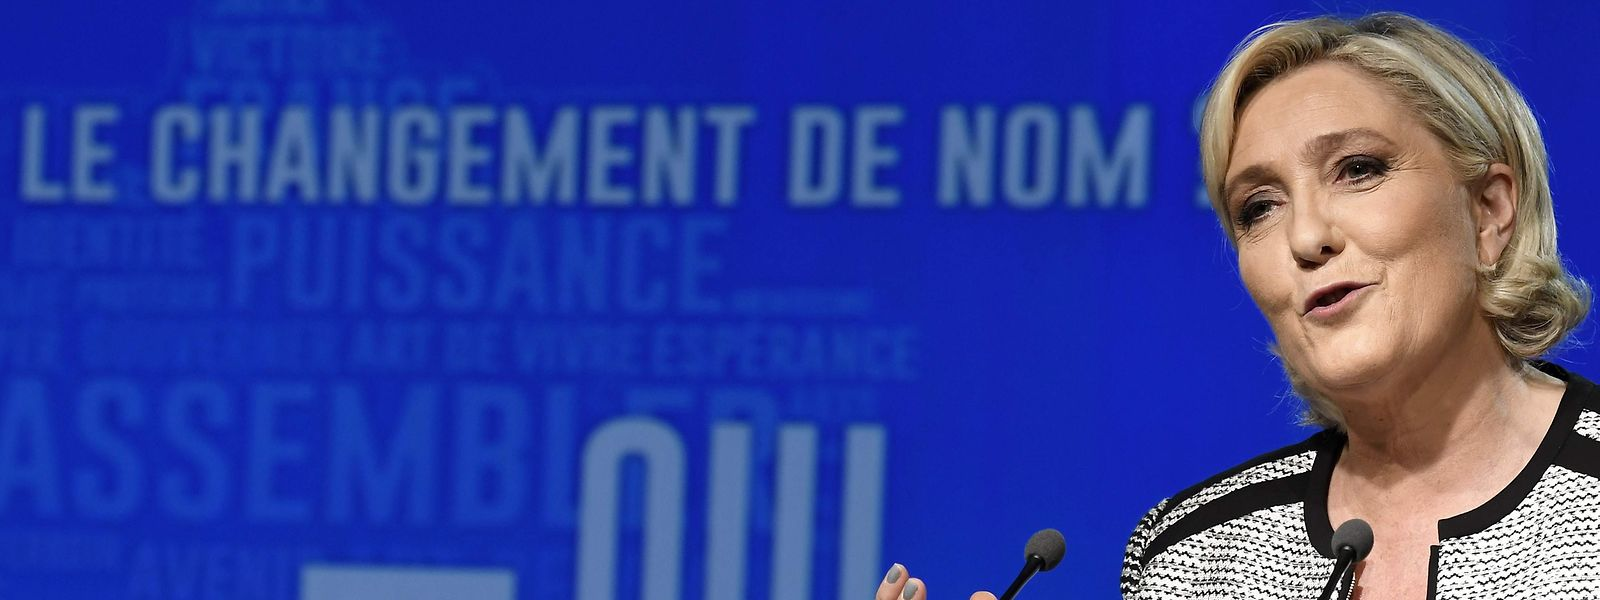 Head of the French far-right party Front national (FN) Marine Le Pen speaks during a congress of the party on June 1, 2018 in Bron near Lyon, southeastern France. The party members backed the changing of the National Front name for Rassemblement National (Union, or Rally) on June 1, 2018 during a congress in Lyon. / AFP PHOTO / JEAN-PHILIPPE KSIAZEK